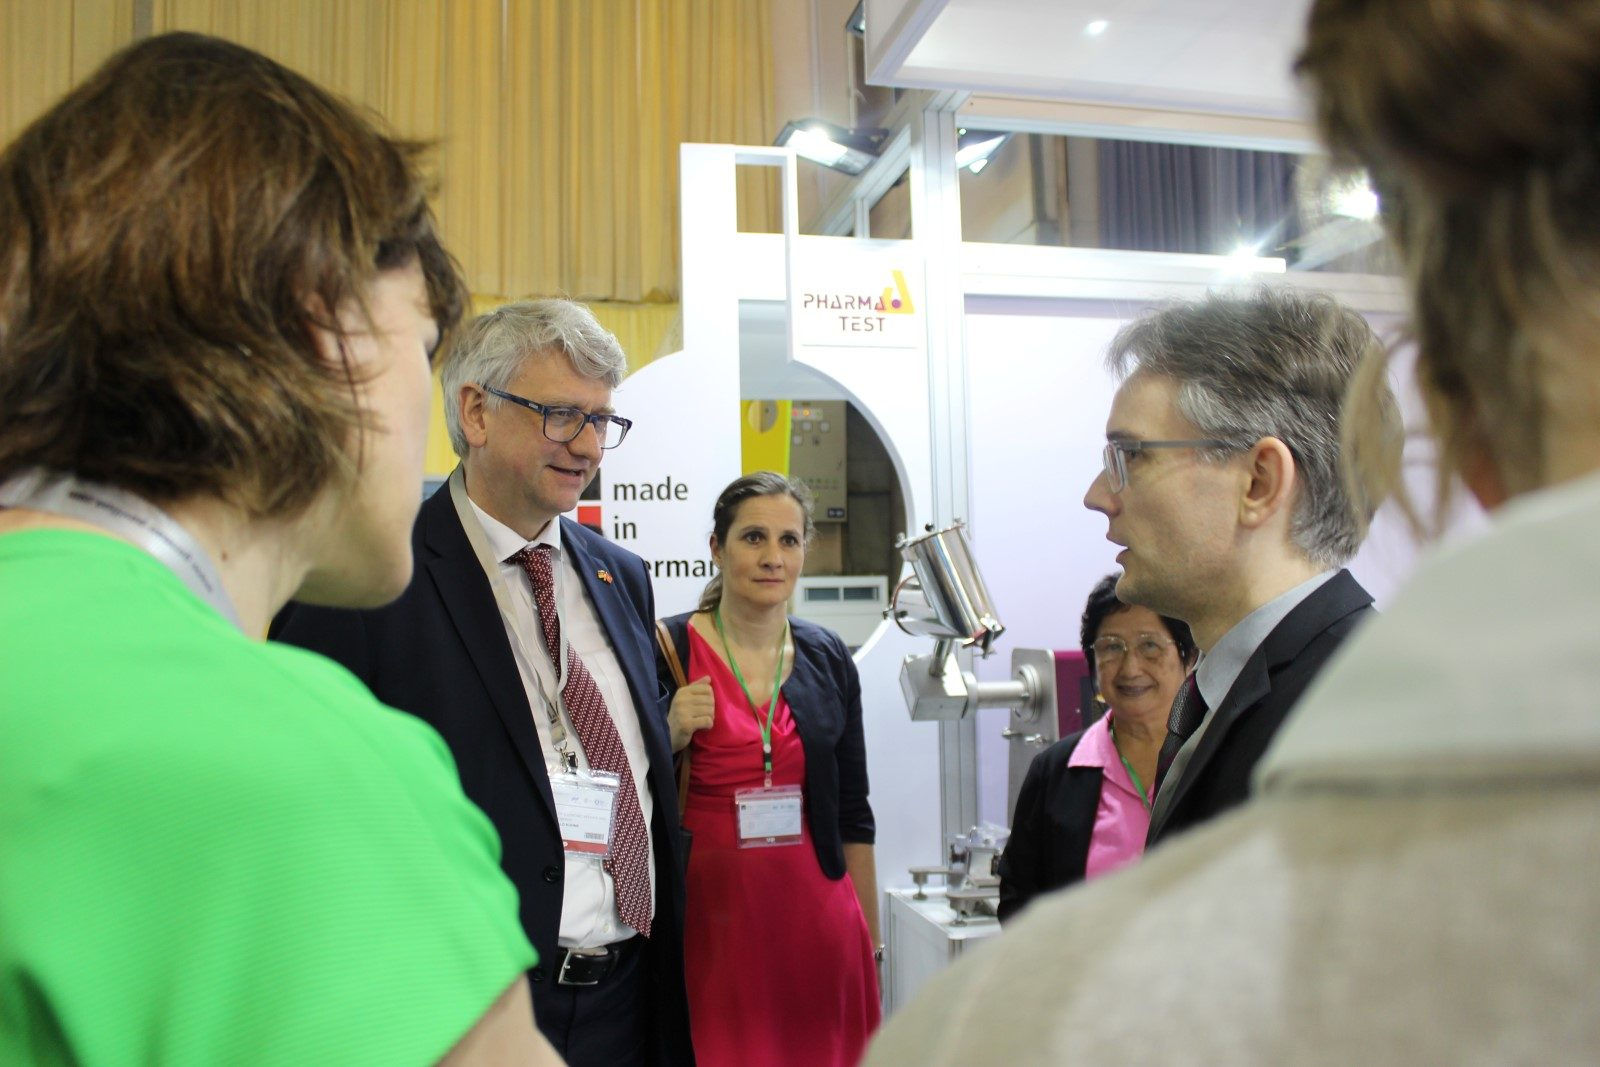 High-ranking appointed visit at the Pharma Test analytica Vietnam 2017 booth: German secretary Mr. Harald Kuhne (left) from the Federal Ministry of Economics and Energy came for a little chat